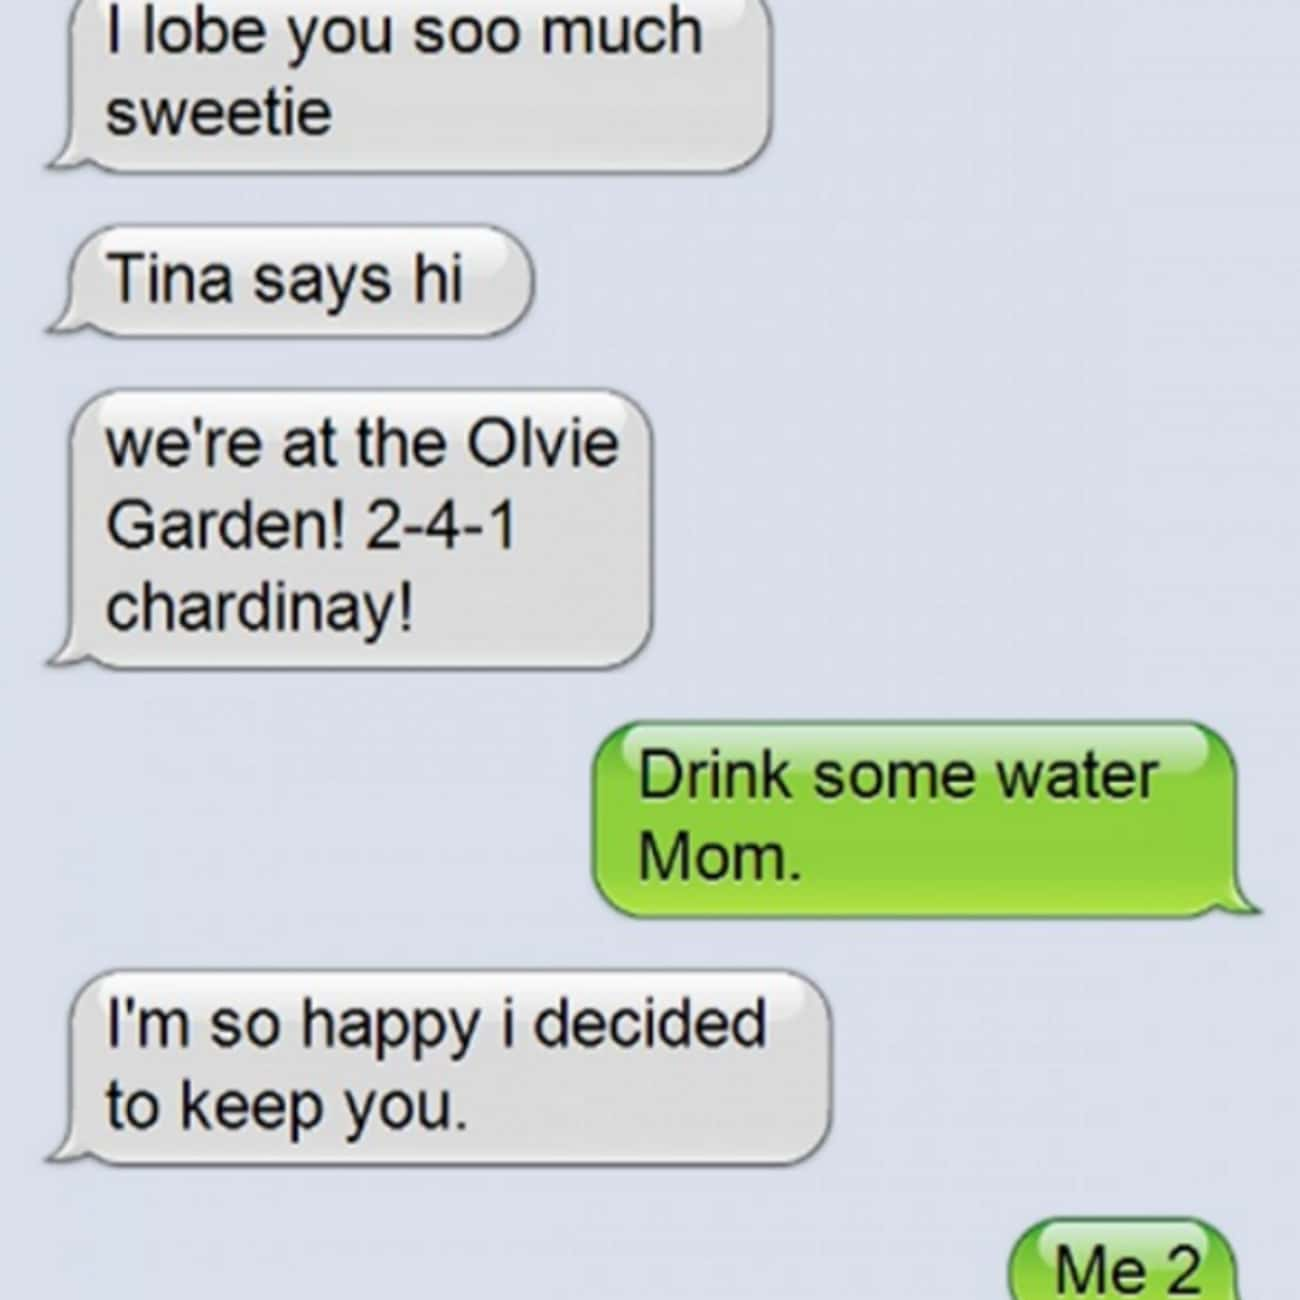 Celebrating Her Best Life Choi is listed (or ranked) 2 on the list 22 Super Funny Texts from Drunk Moms